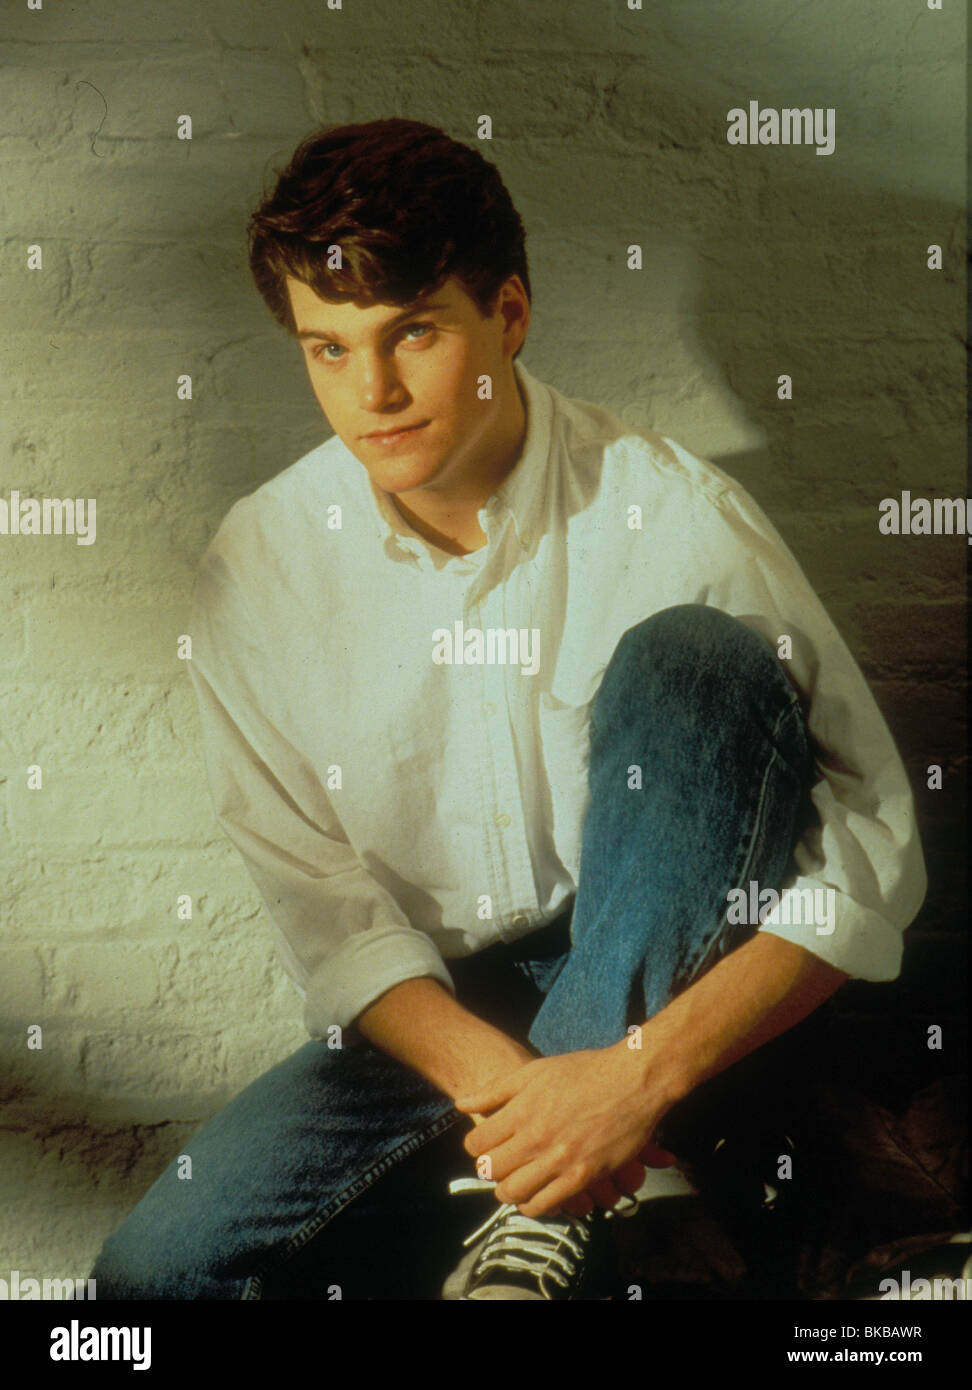 Scent Of A Woman 1992 Chris O Donnell Scw 027 Stock Photo Alamy